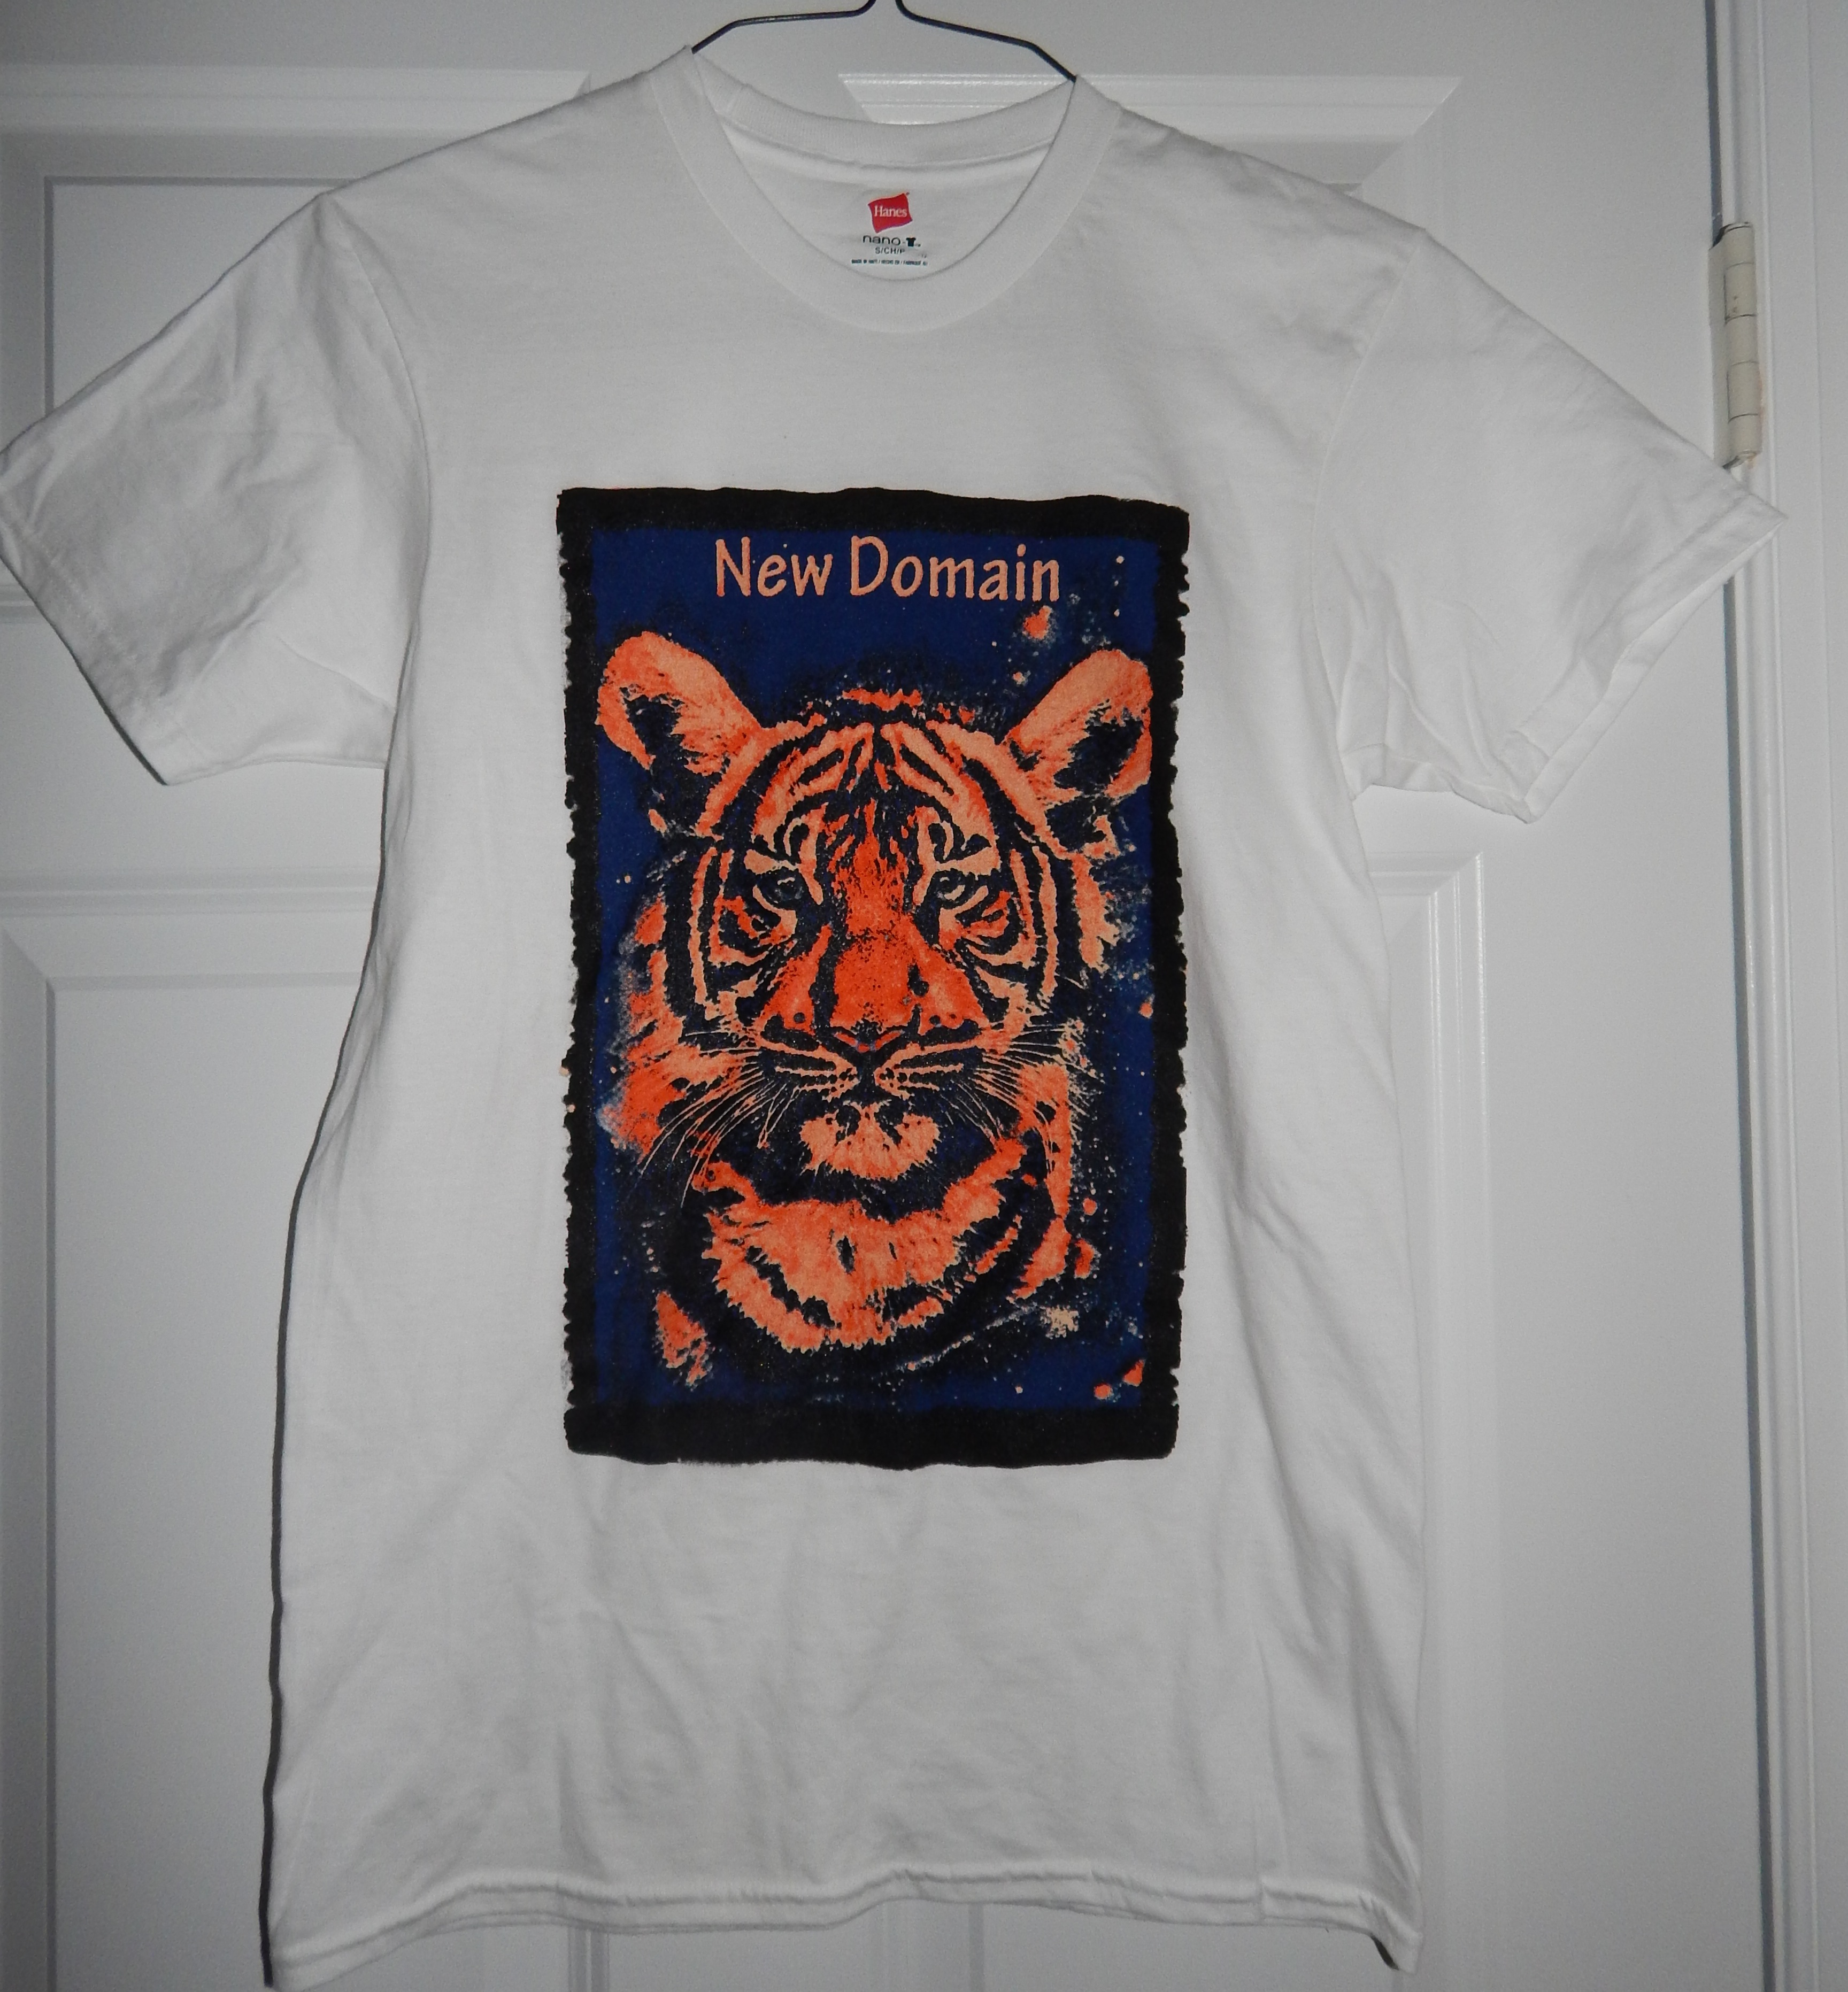 White - Vibre Tigre / New Domain Clothing